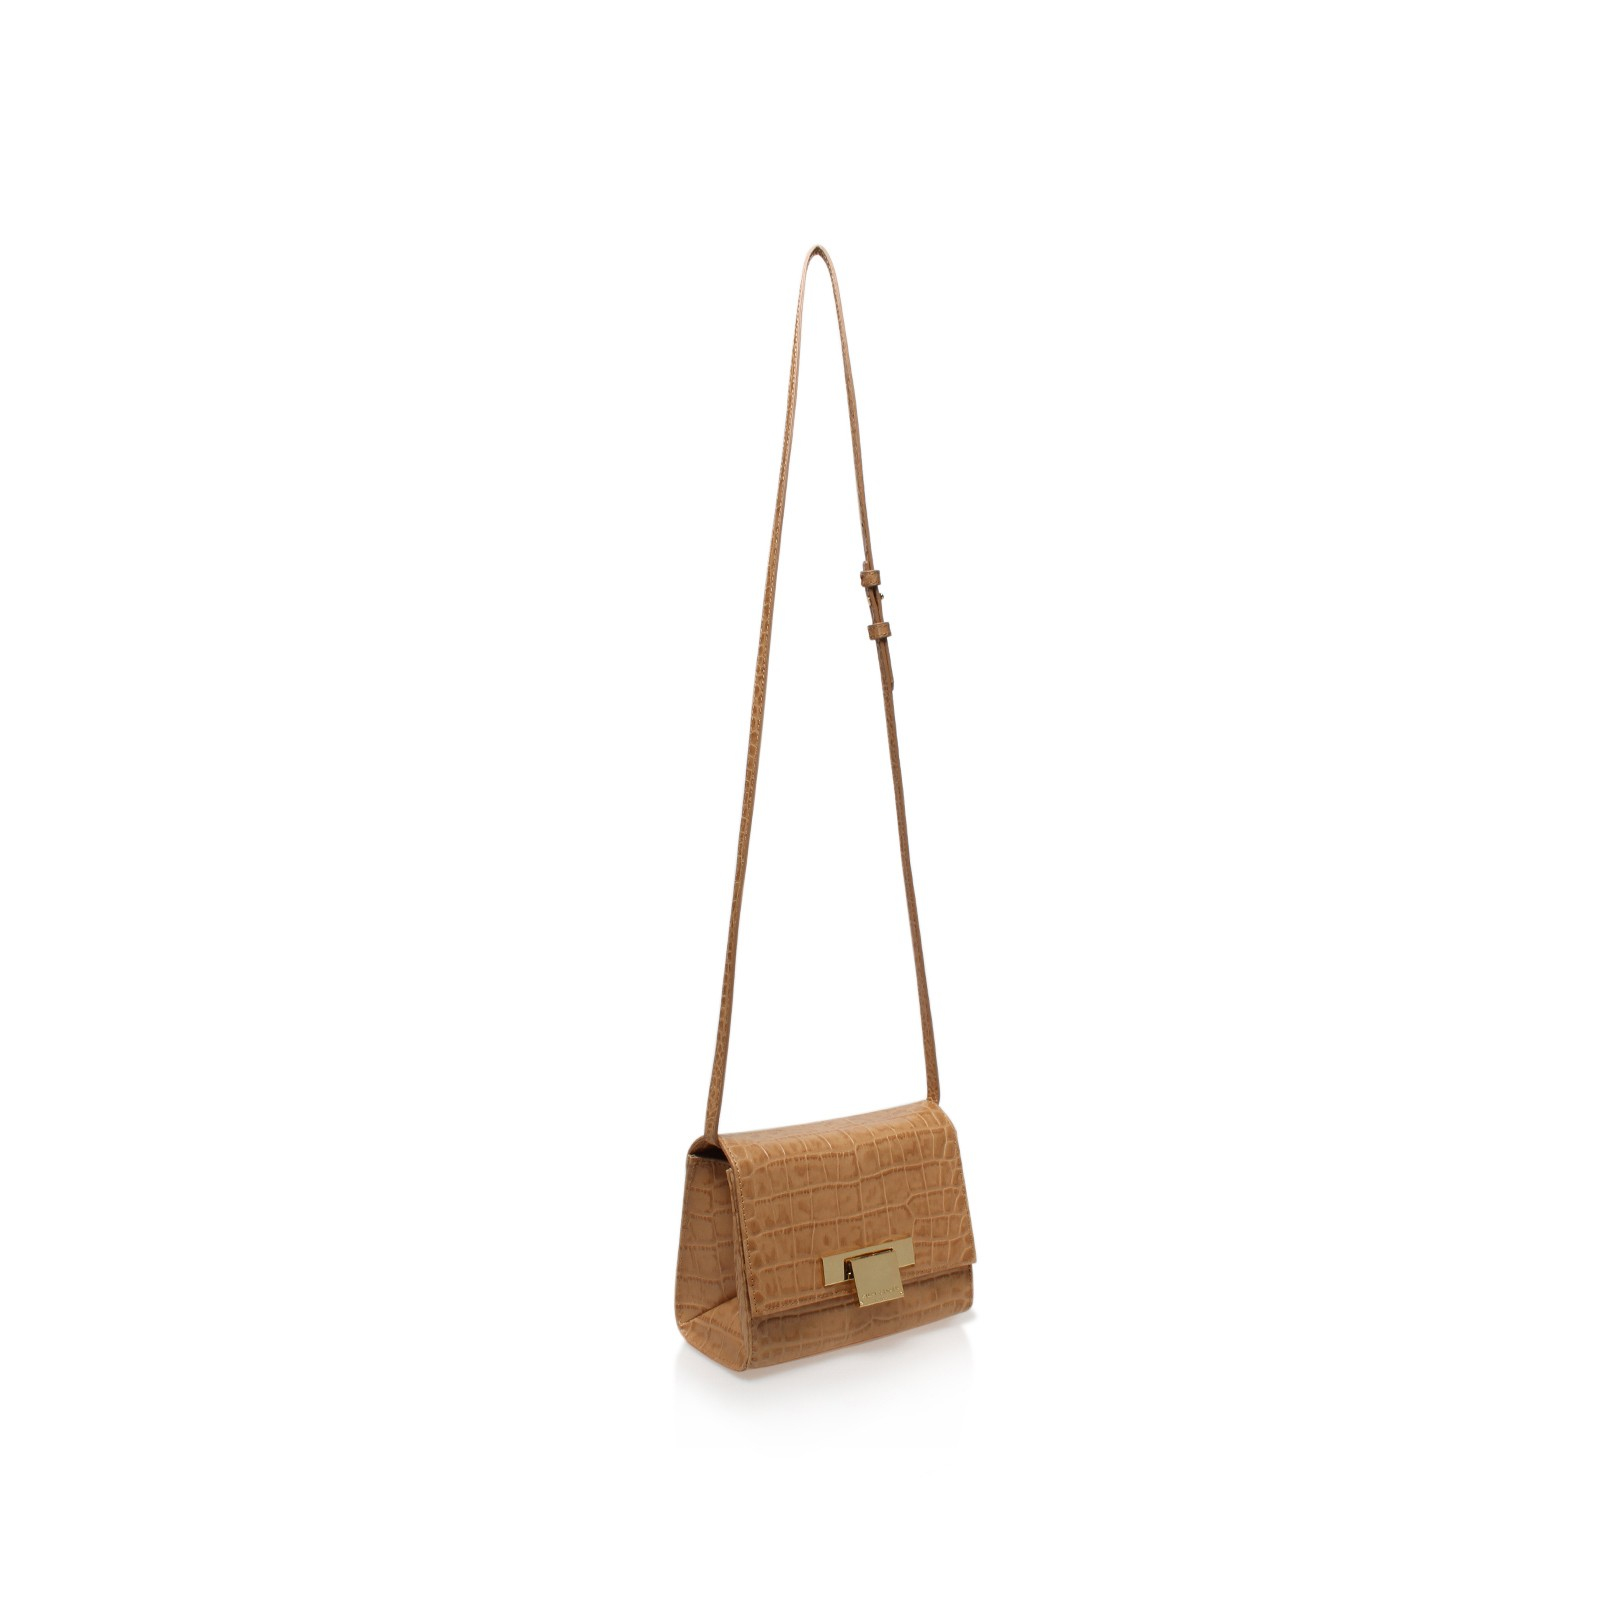 Kurt Geiger Leather Croc Annie Cross Body in Beige (Natural)